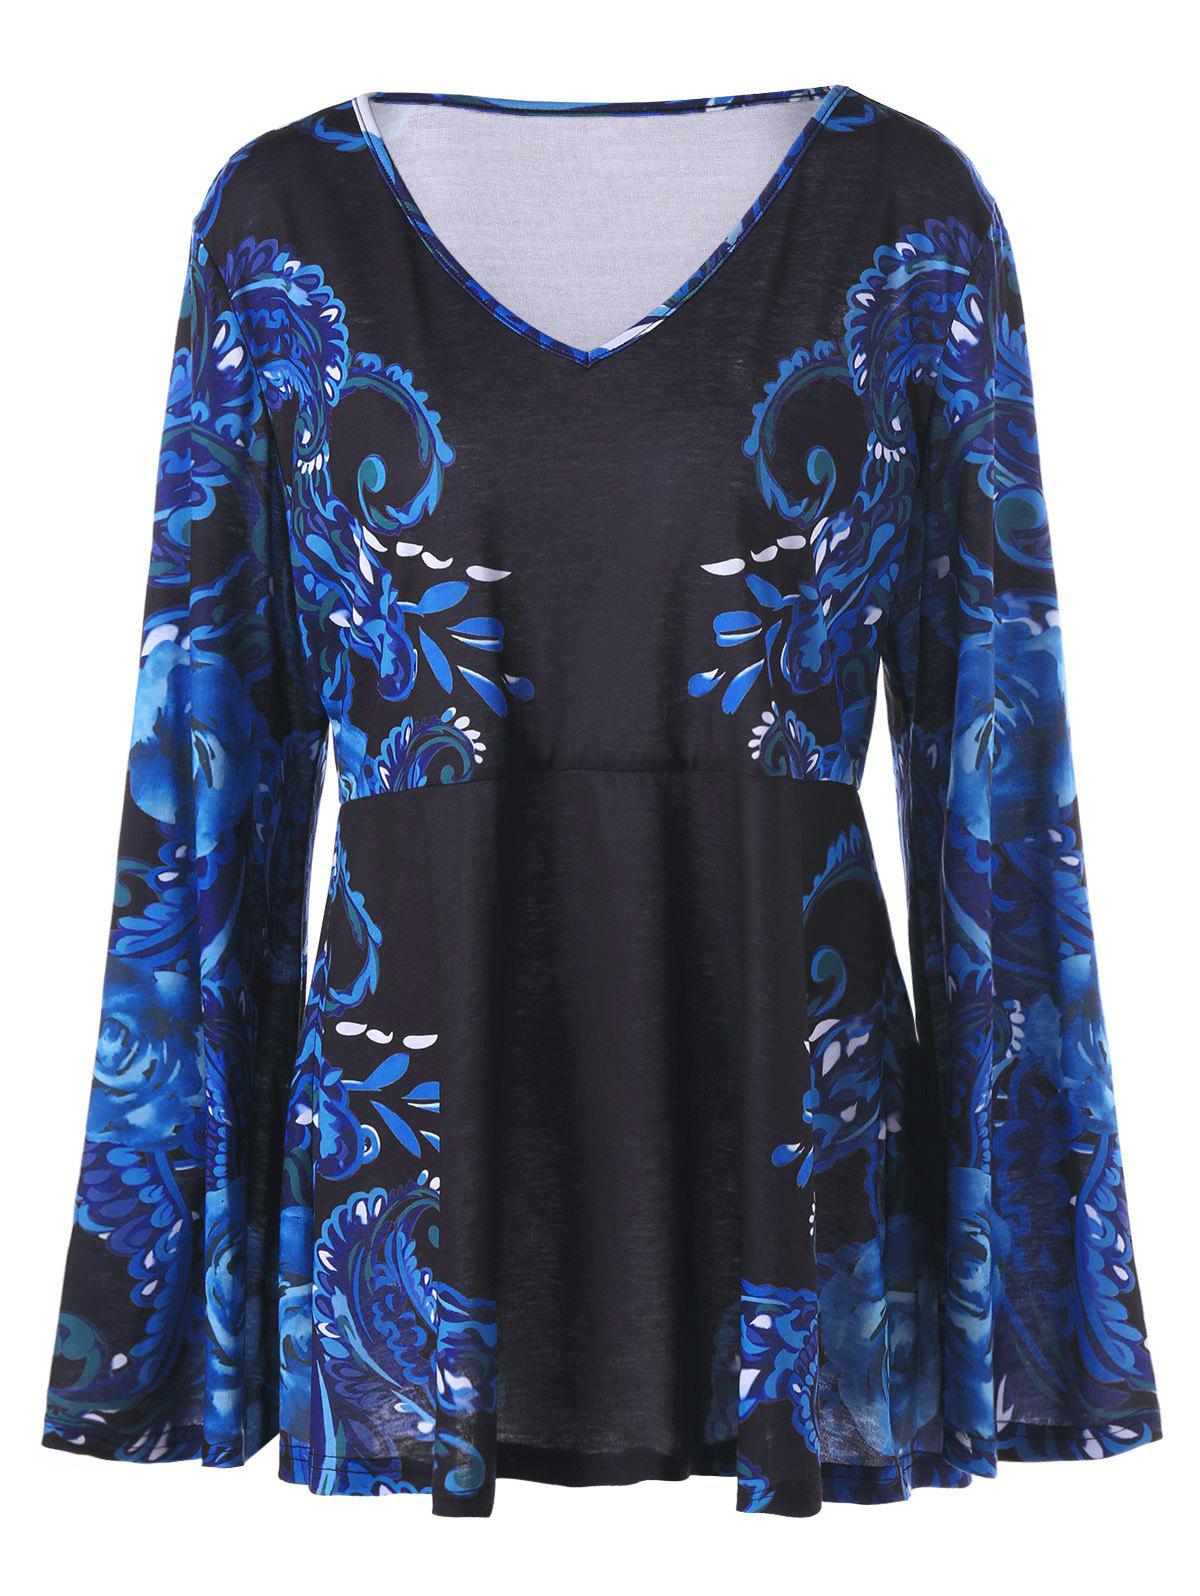 Plus Size Floral Print Flare Sleeve TopWOMEN<br><br>Size: 5XL; Color: BLACK; Material: Cotton,Polyester; Shirt Length: Long; Sleeve Length: Full; Collar: V-Neck; Style: Casual; Season: Fall,Spring; Sleeve Type: Flare Sleeve; Pattern Type: Floral; Weight: 0.3000kg; Package Contents: 1 x T-shirt;